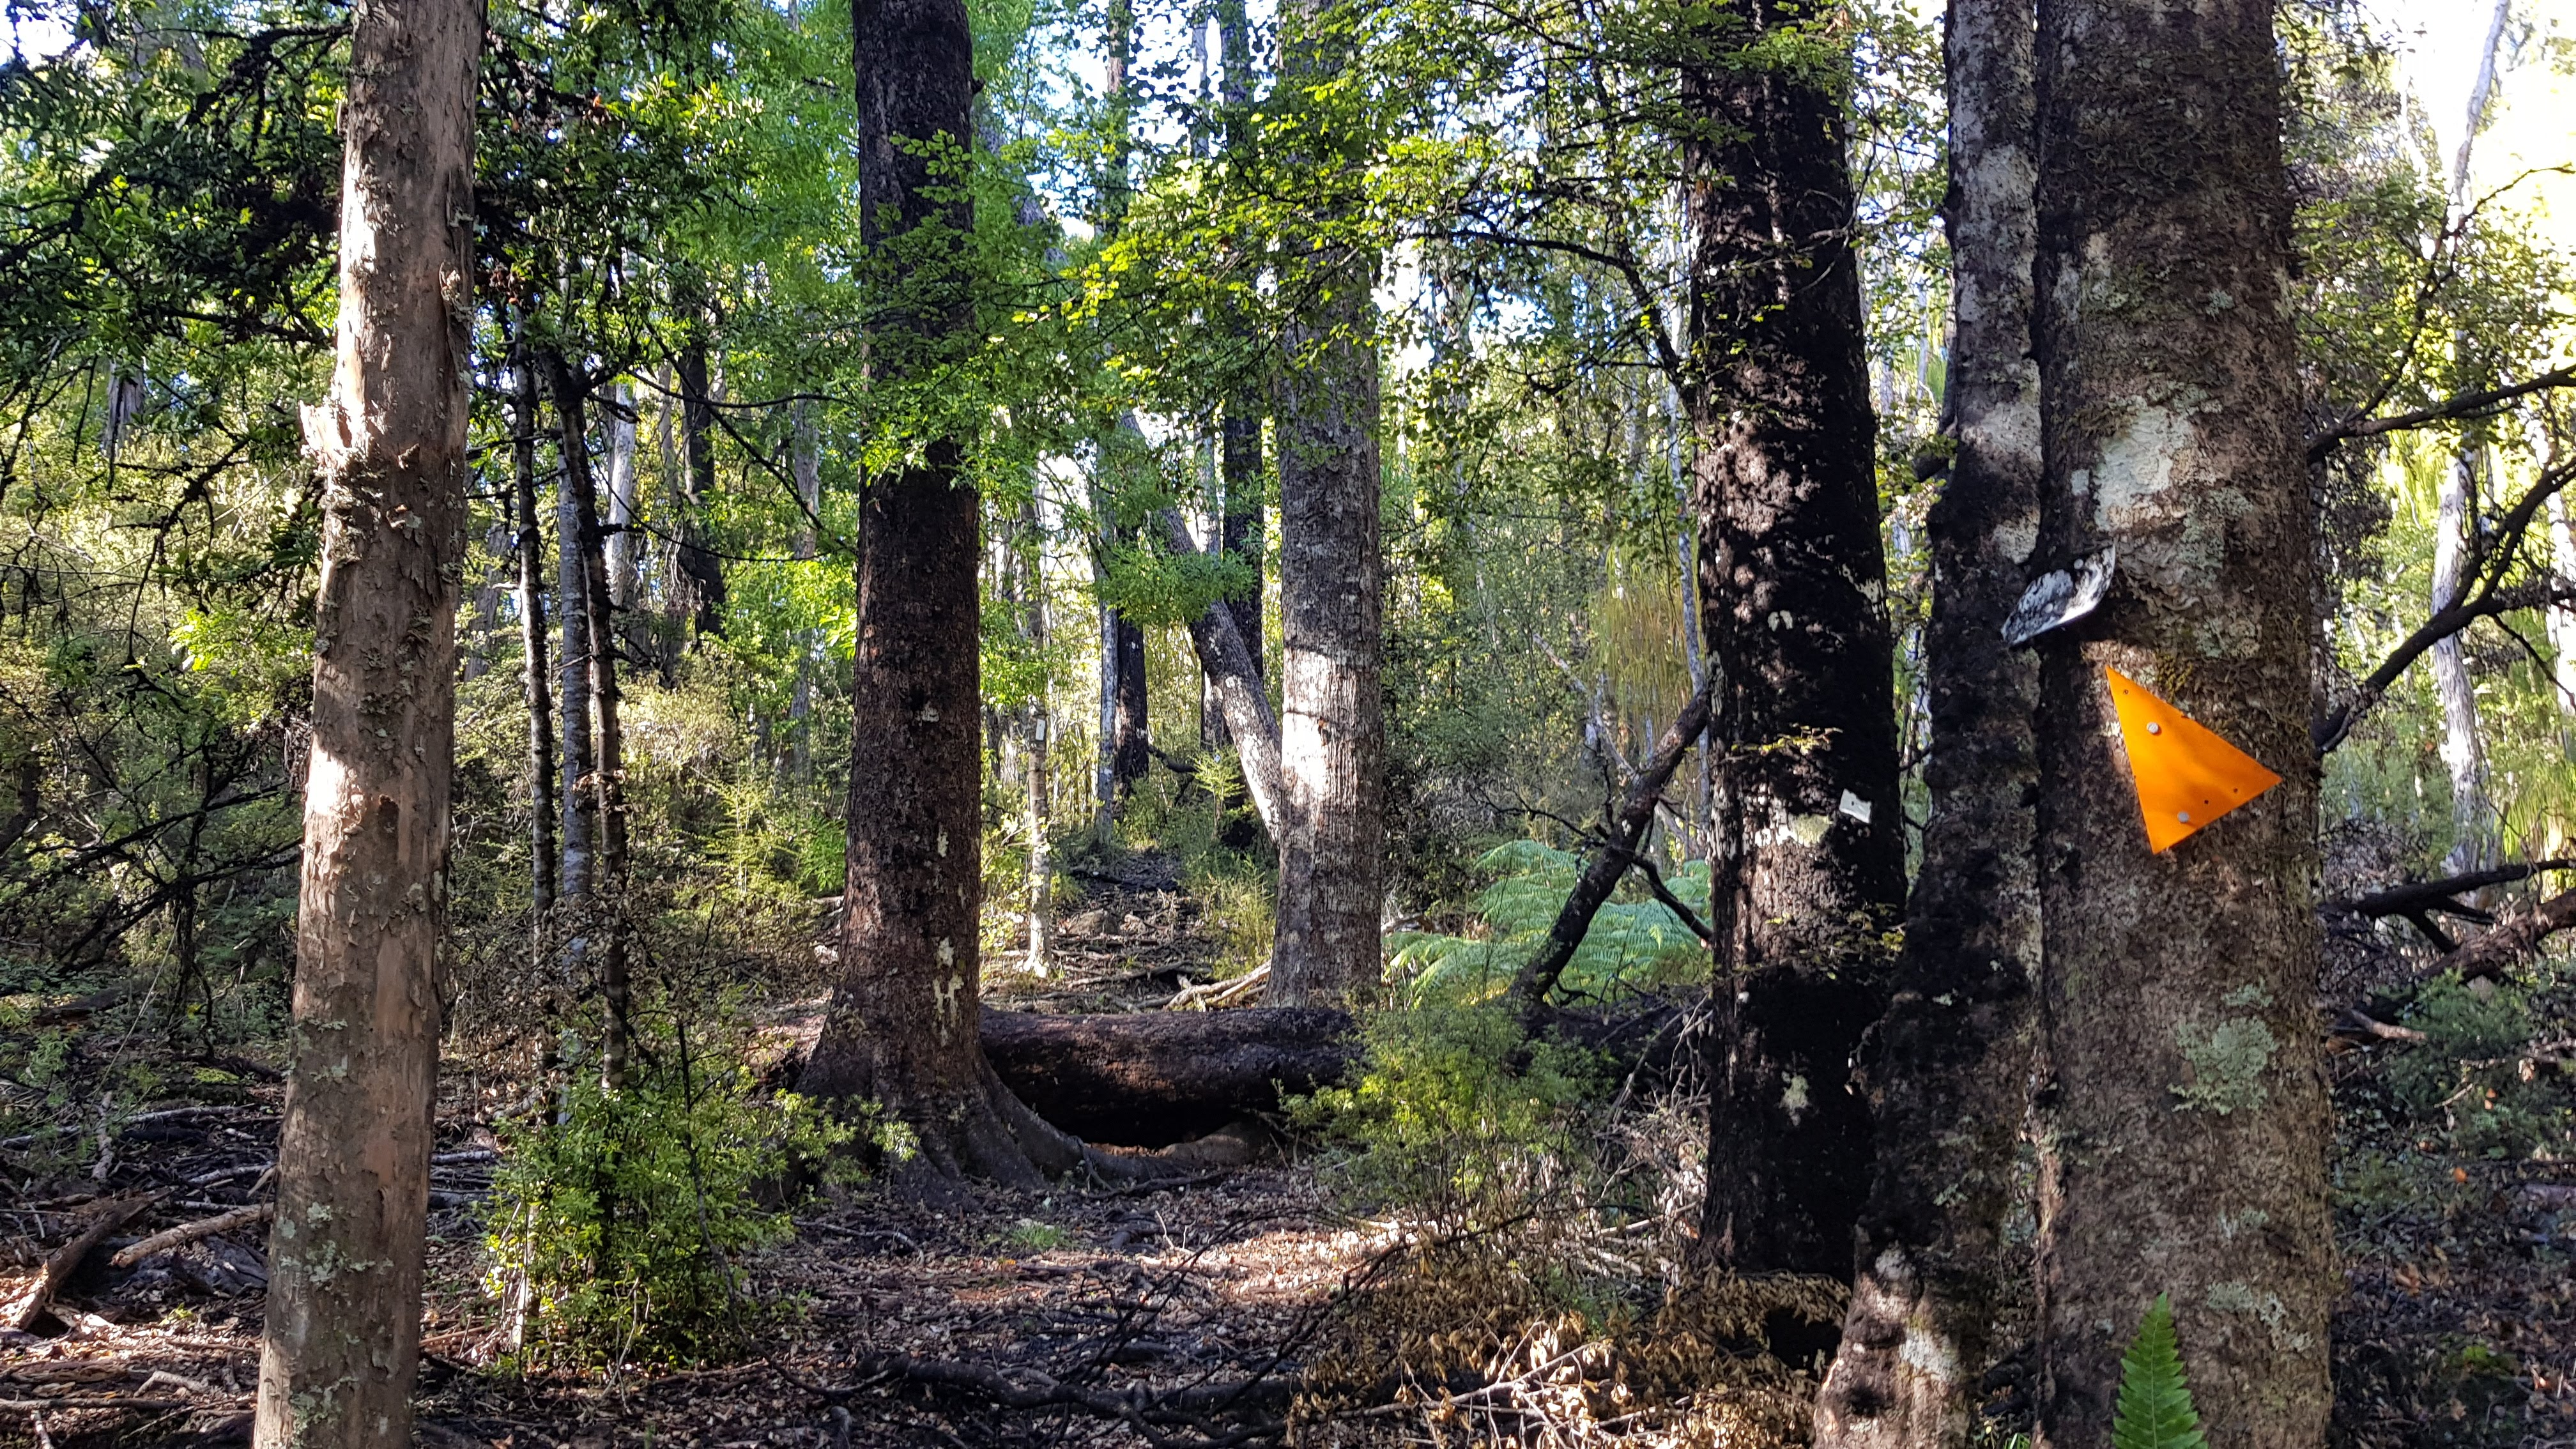 Into the beech forest